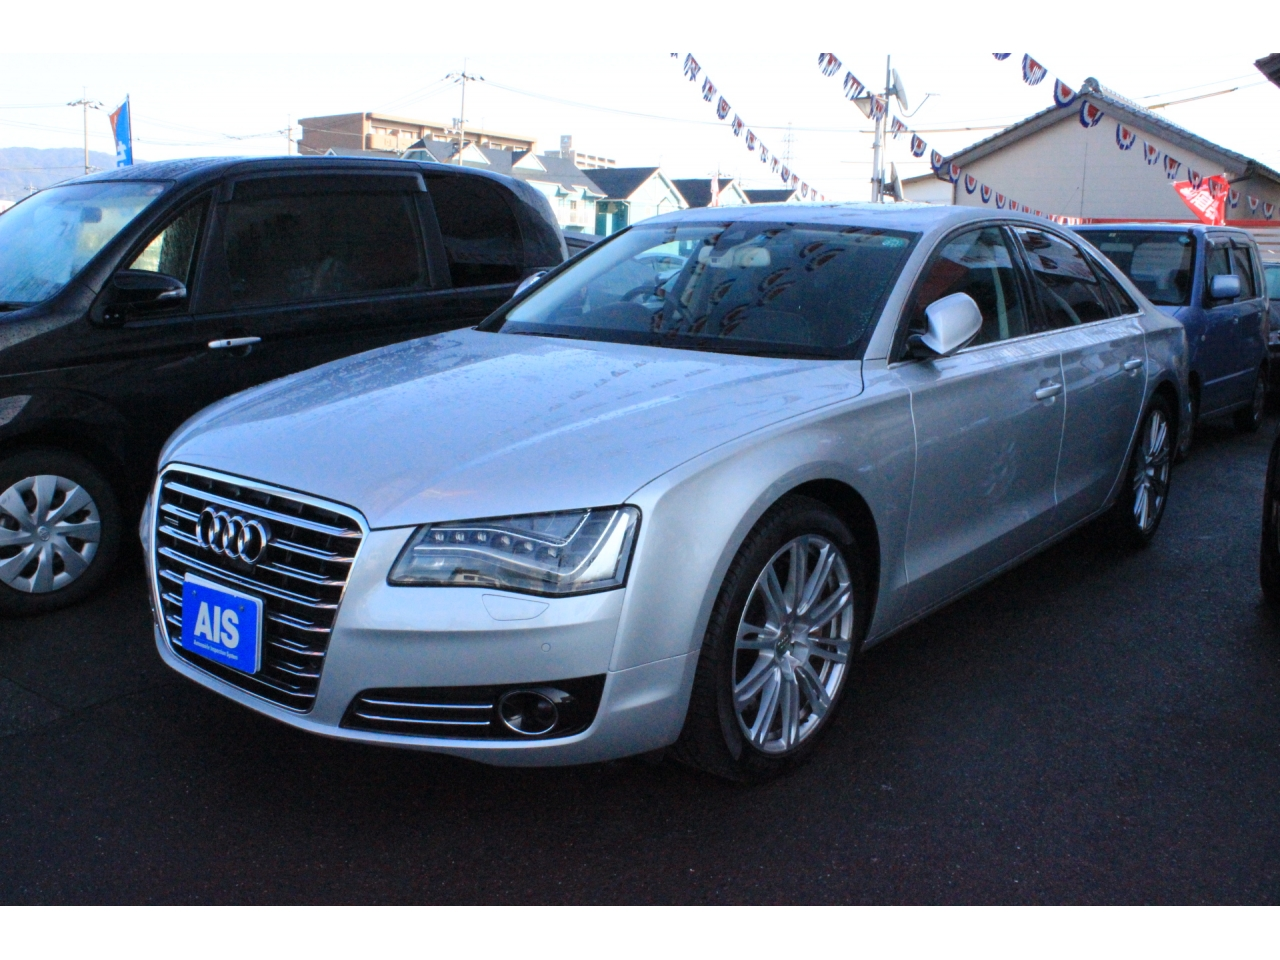 Buy/import AUDI A8 (2011) to Kenya from Japan auction